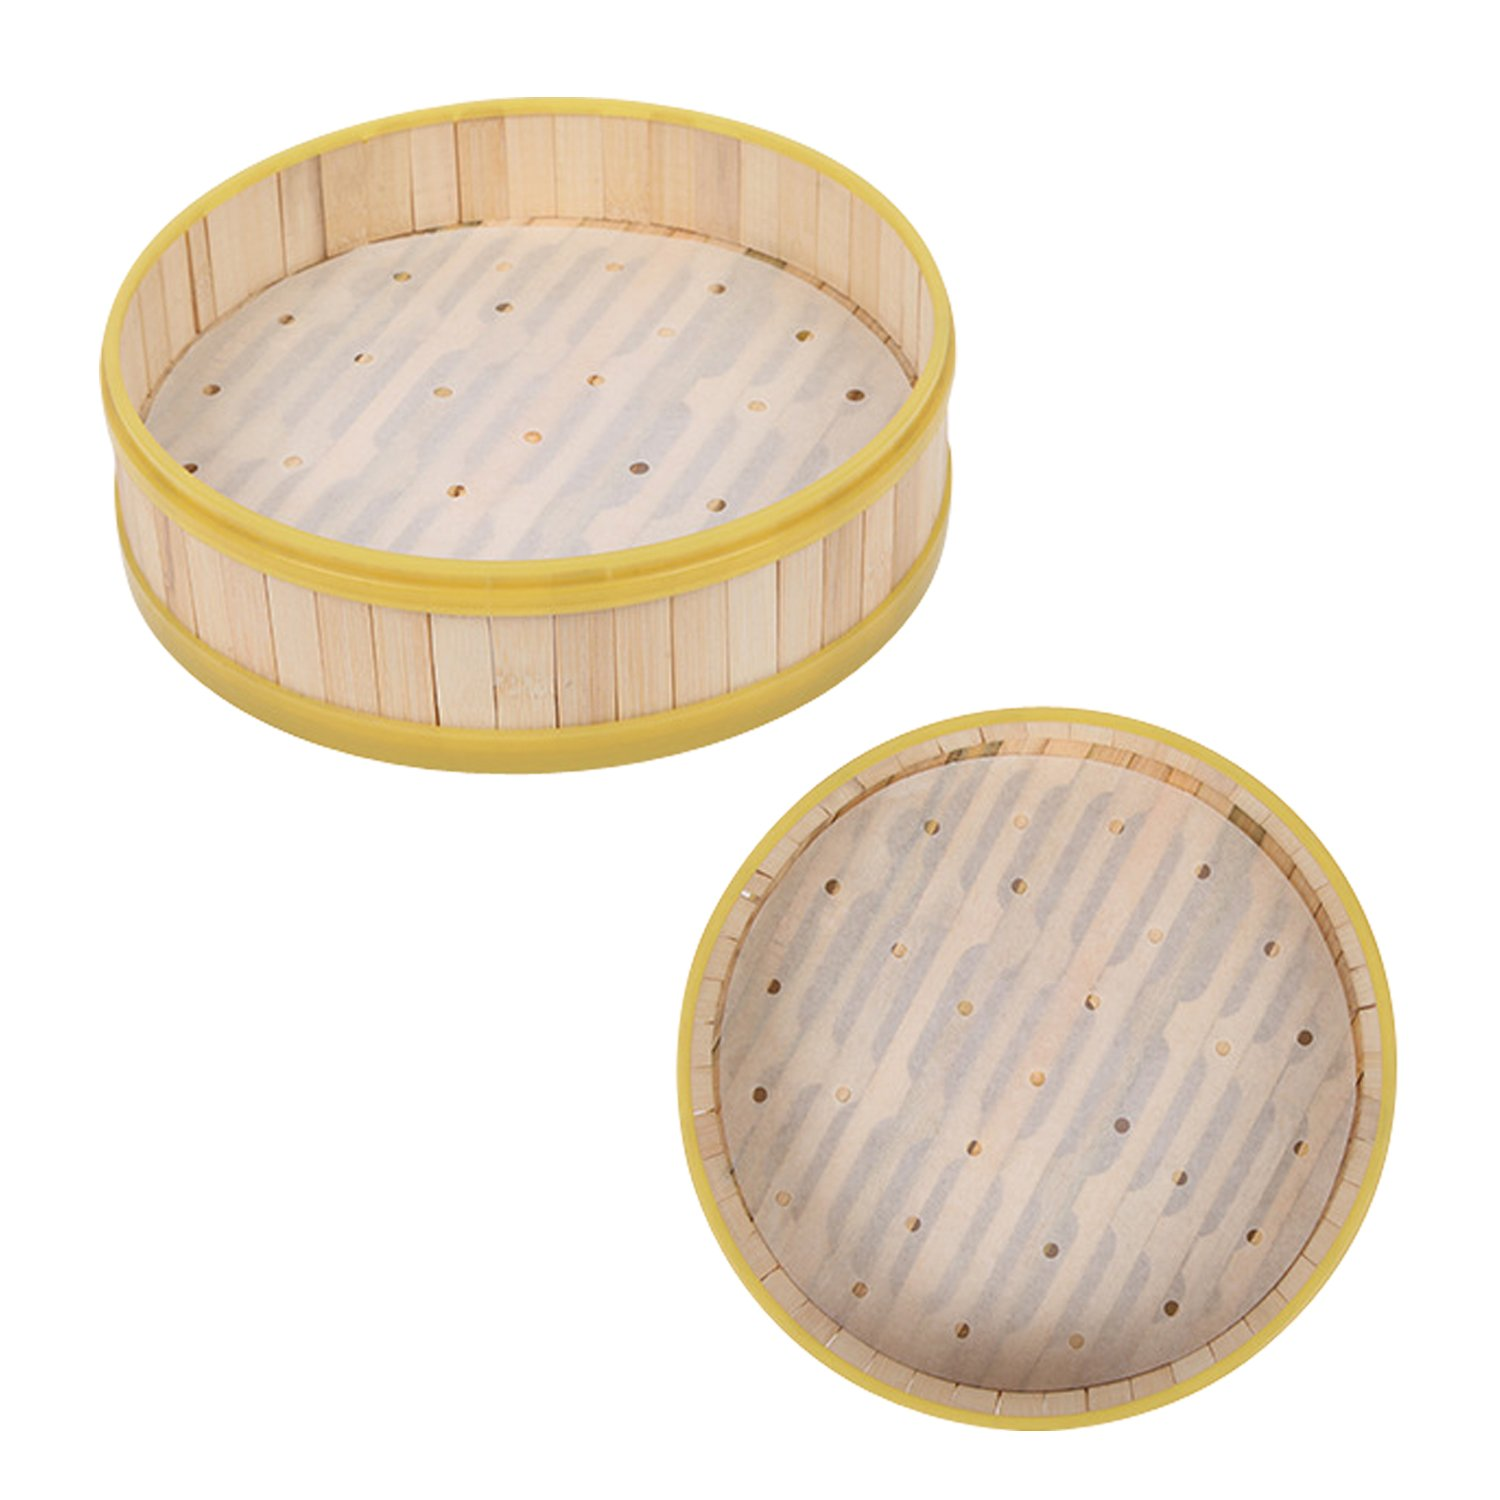 Newkeen 100pcs 9 Inch Diameter Baking Parchment Circles Non-Stick Parchment Paper Baking Paper Liners for Round Cake Pans